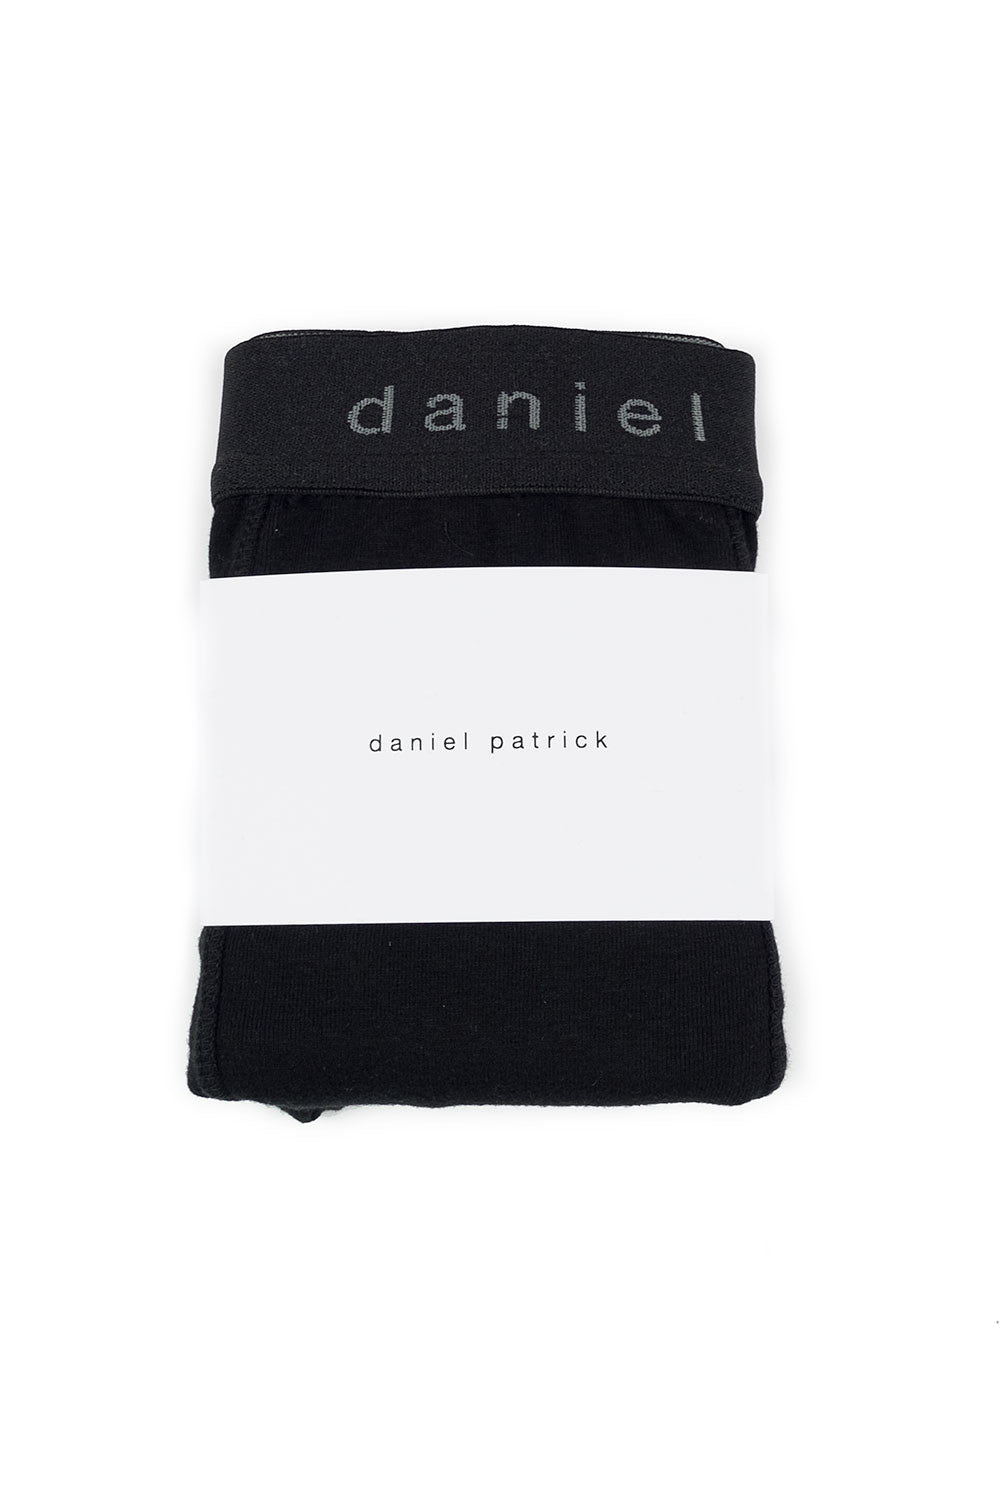 daniel patrick black designer boxer brief pack